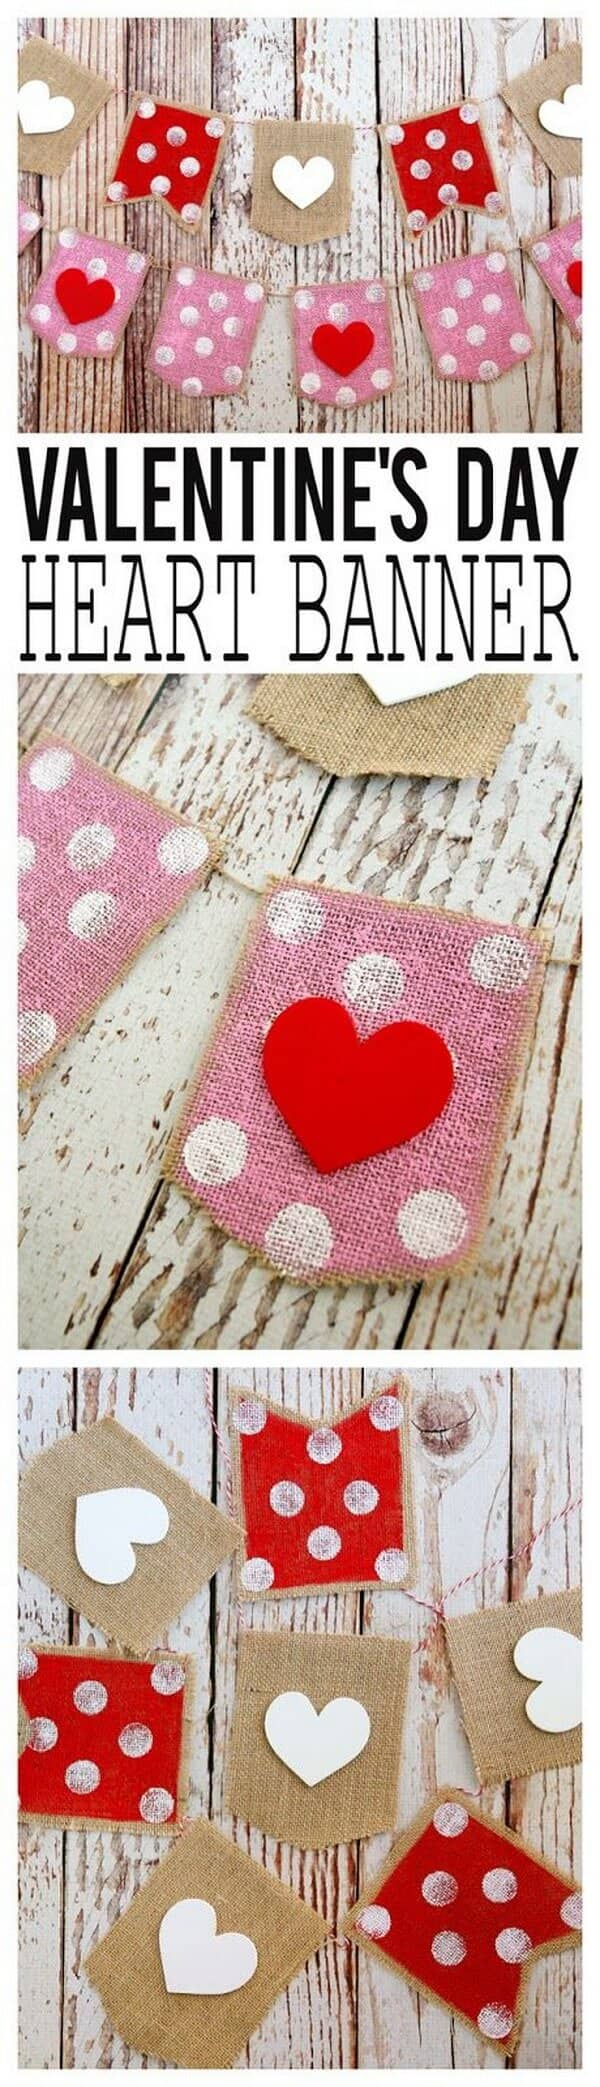 Do-It-Yourself Stitched Cloth Valentine Heart Garland